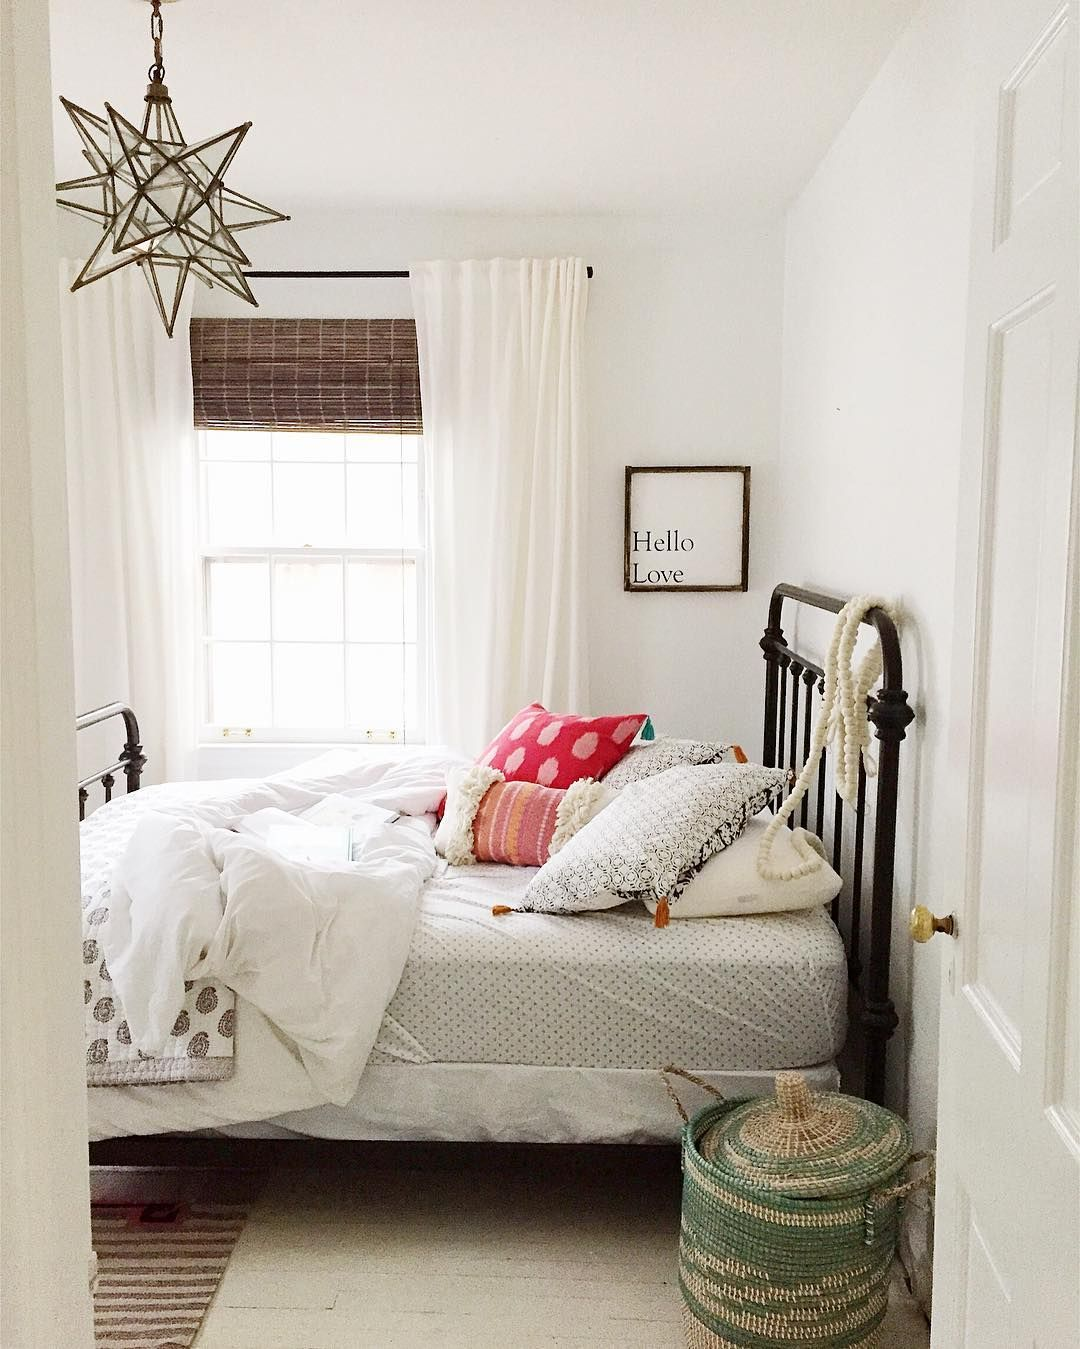 farmhouse bedroom | inspirational spaces | pinterest | bedrooms